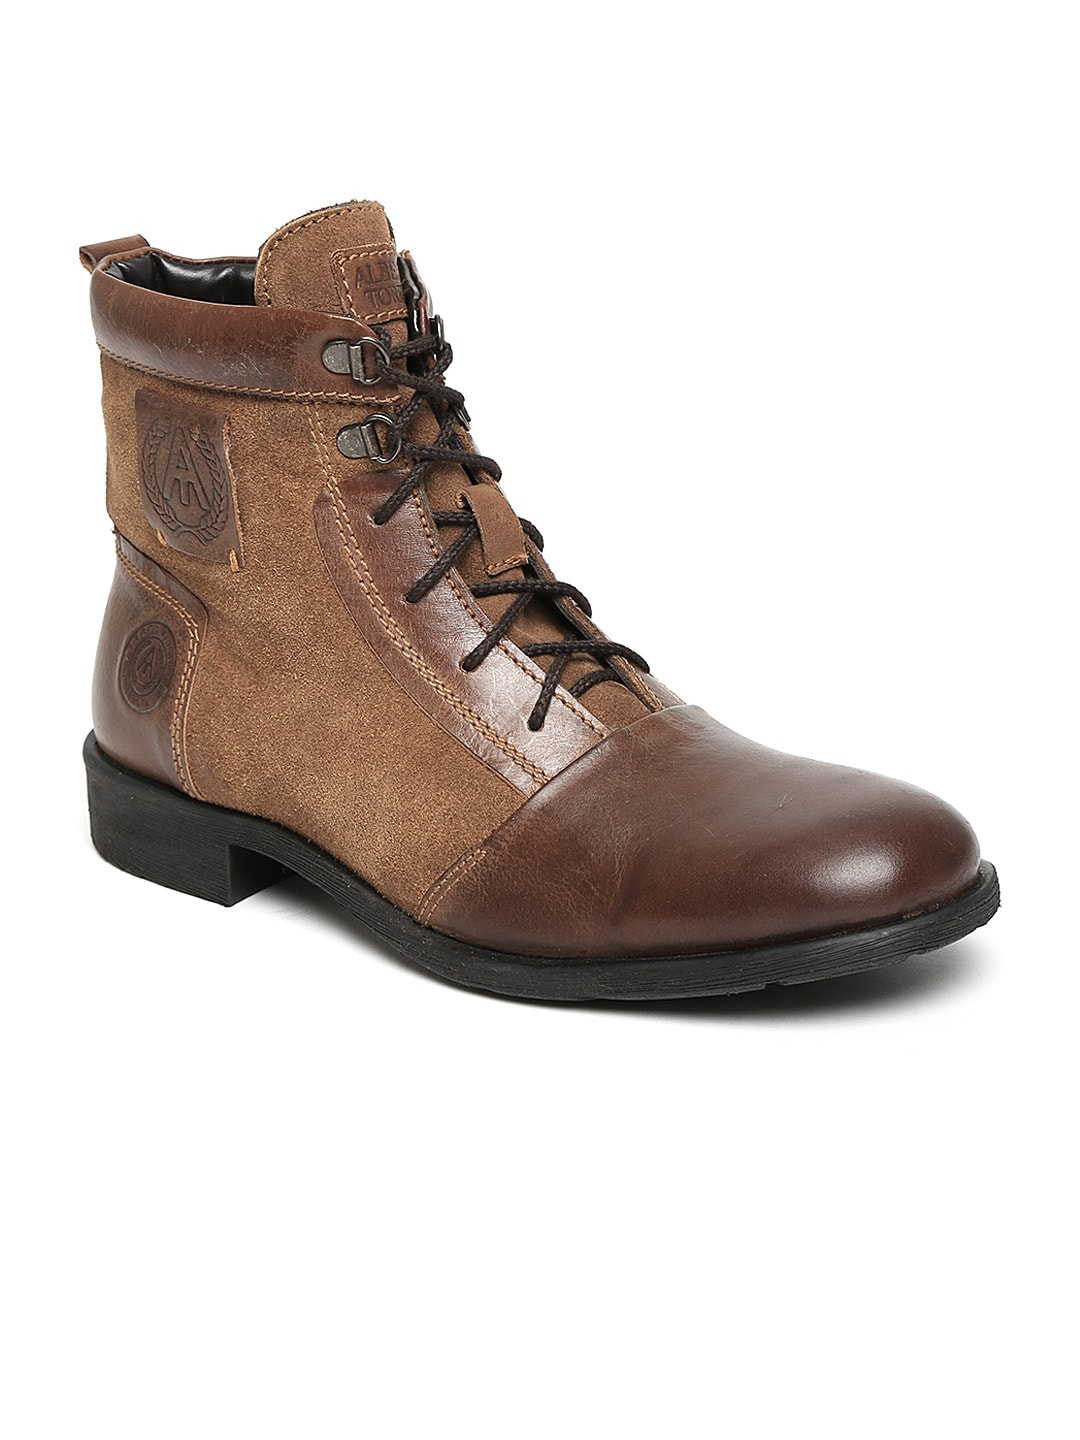 Alberto Torresi Alberto Torresi Men Brown Leather Boots